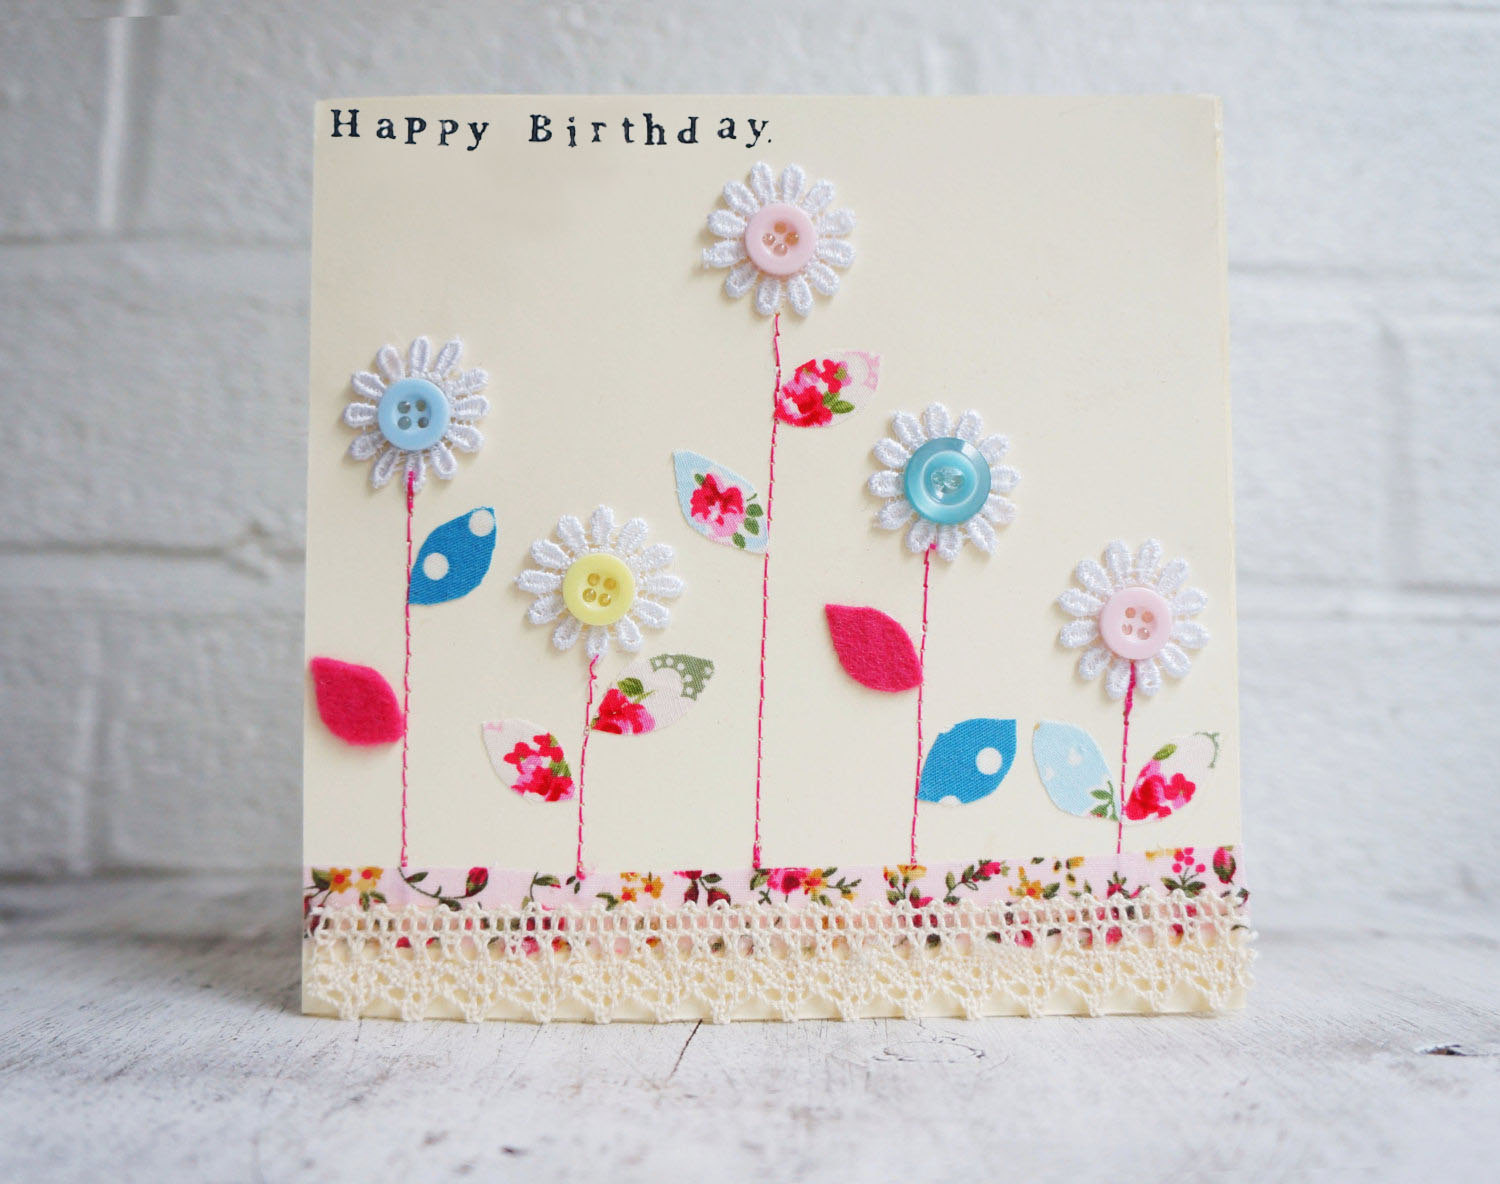 The Collection Of Impressive And Beautiful Birthday Cards To Send Your Wishes Father 3